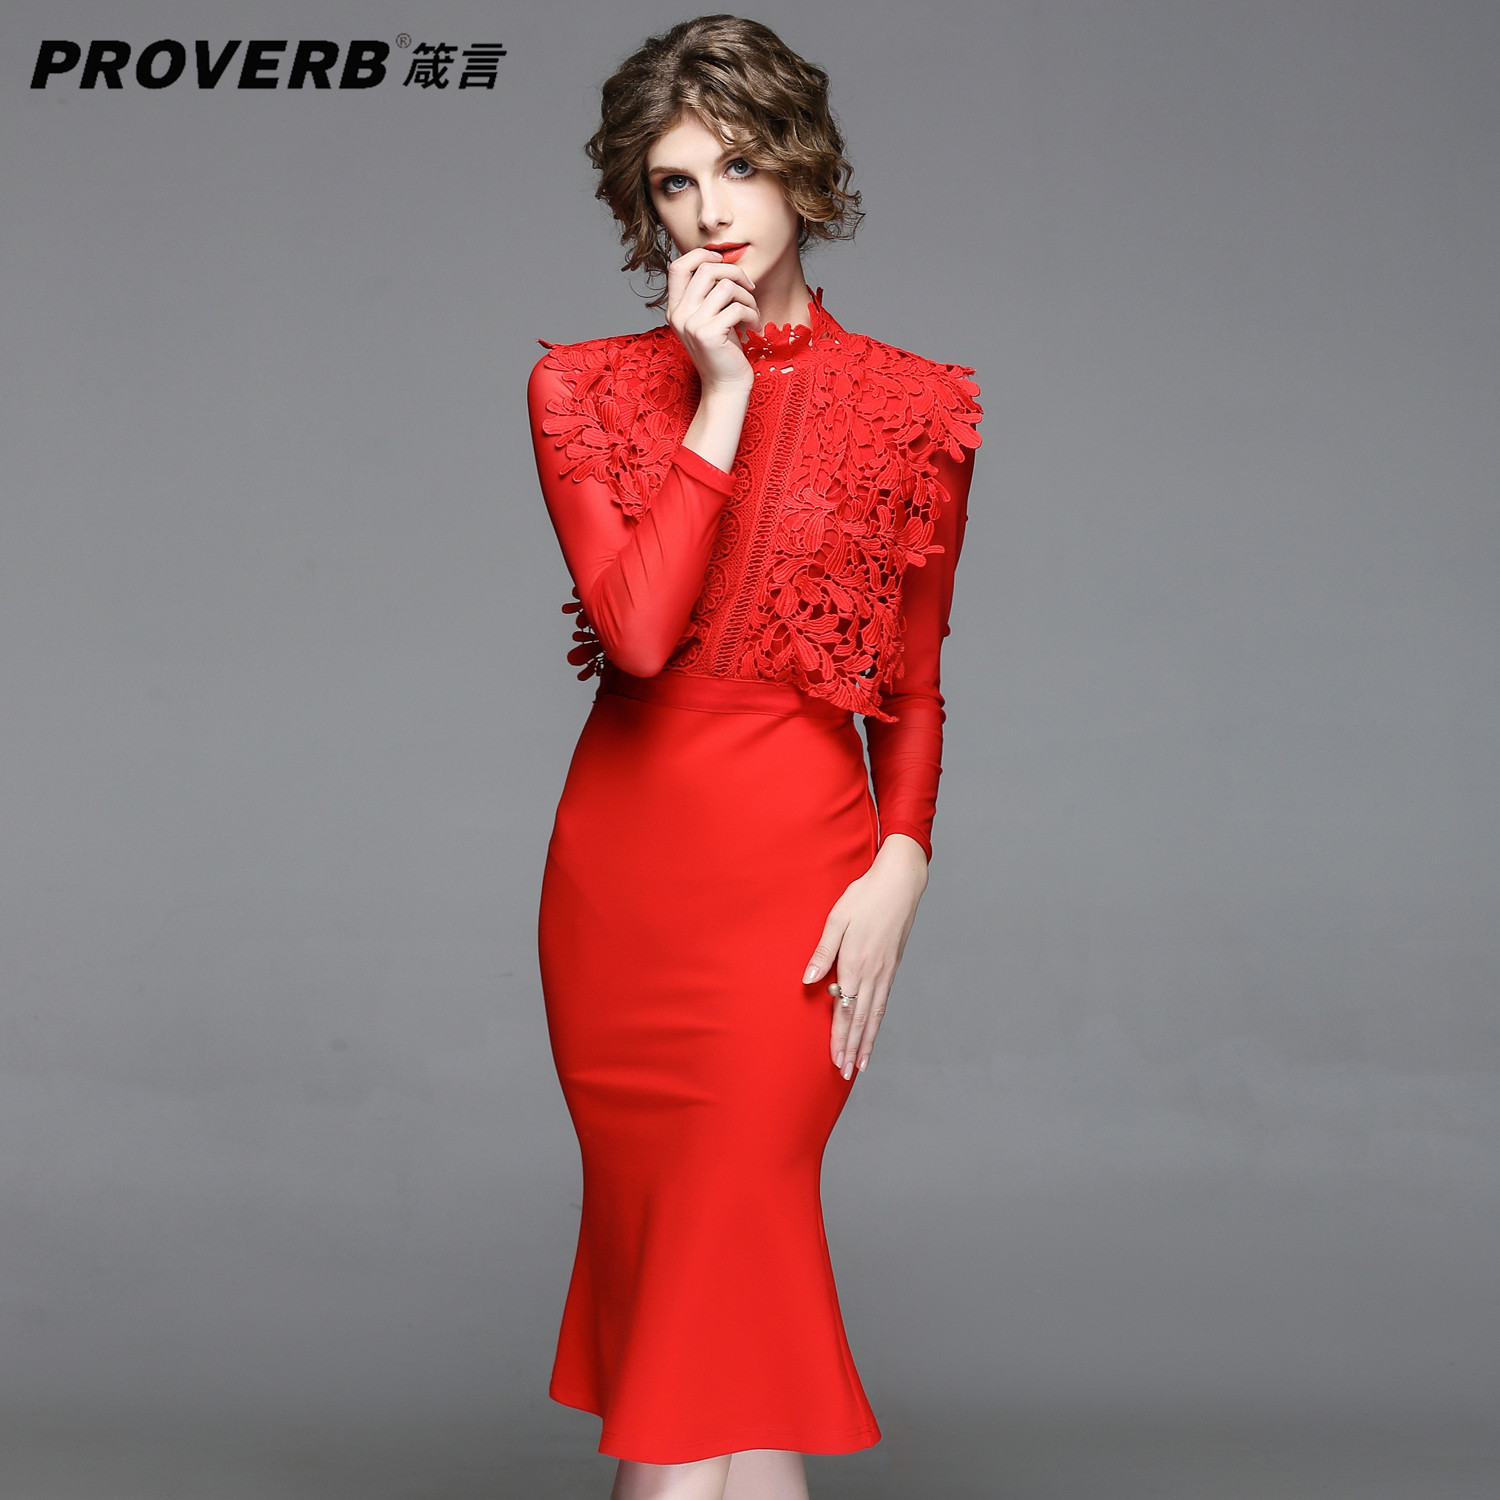 PROVERB Red Women Party Desses Stand Long Sleeve Autumn Winter bodycon Midi Dresses Christmas elegant party dresses vestidos